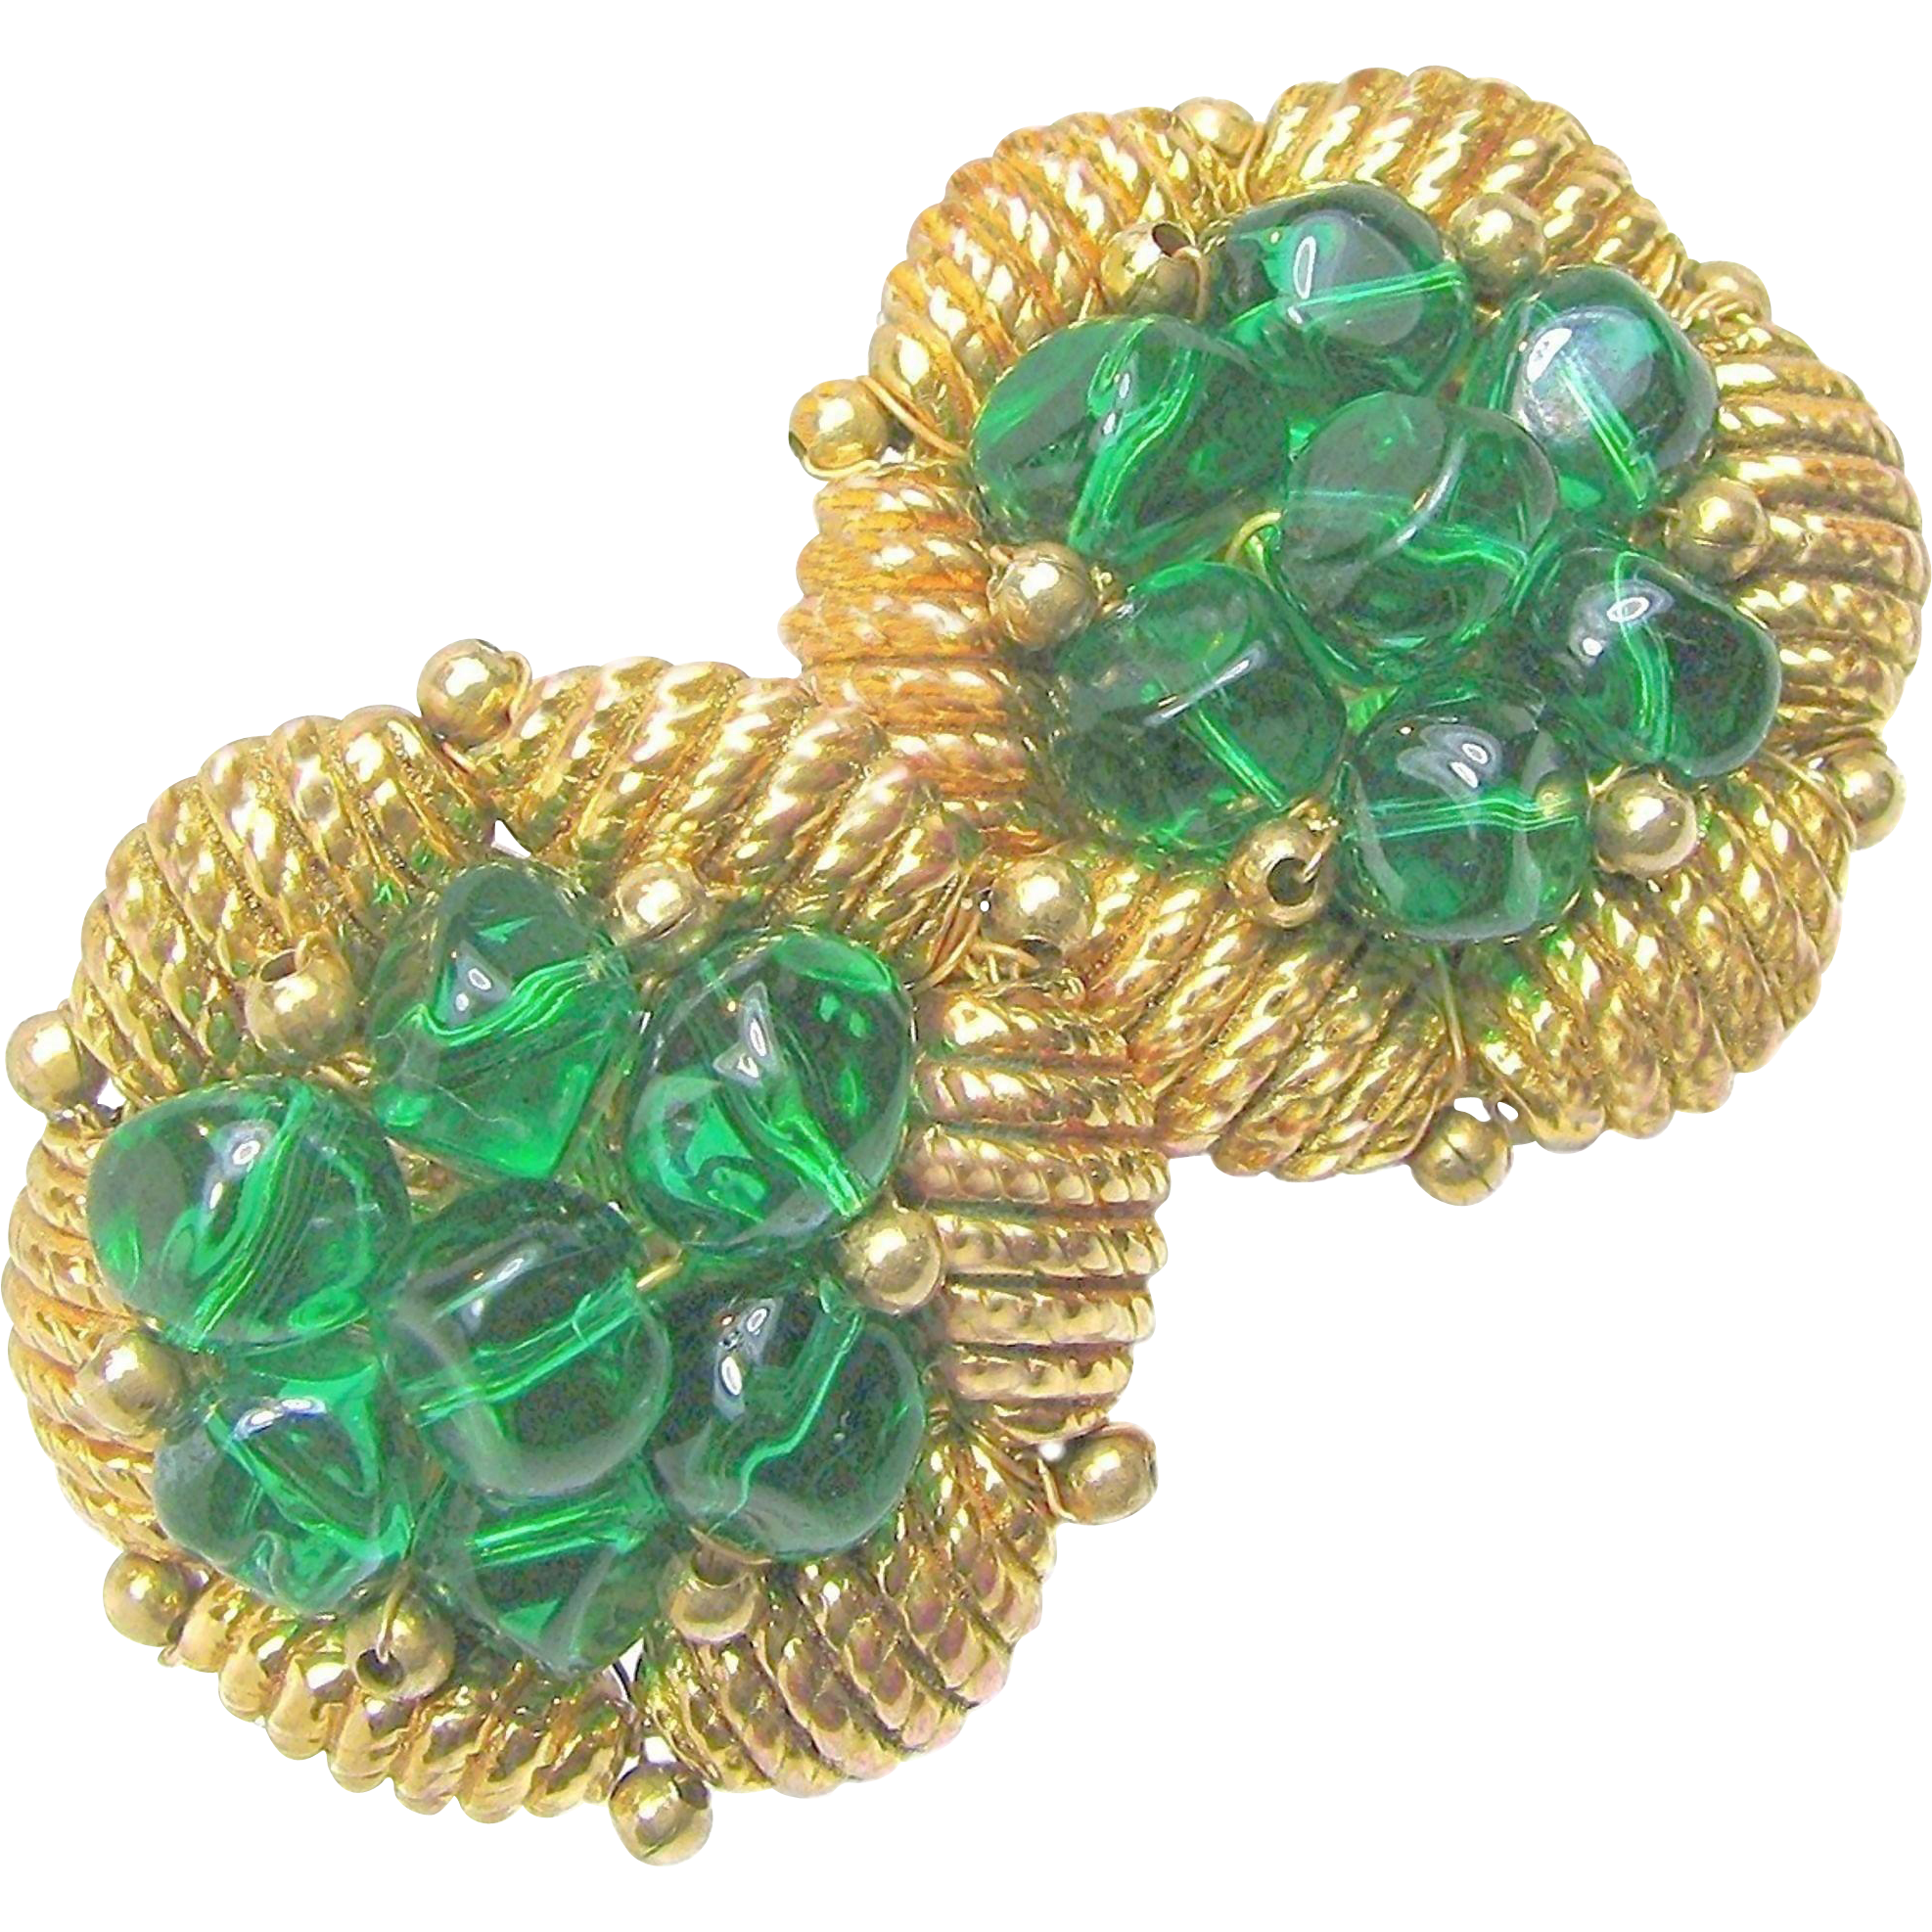 Dynamite Castlecliff Handwired Pinched Green Glass Earrings c.1950's